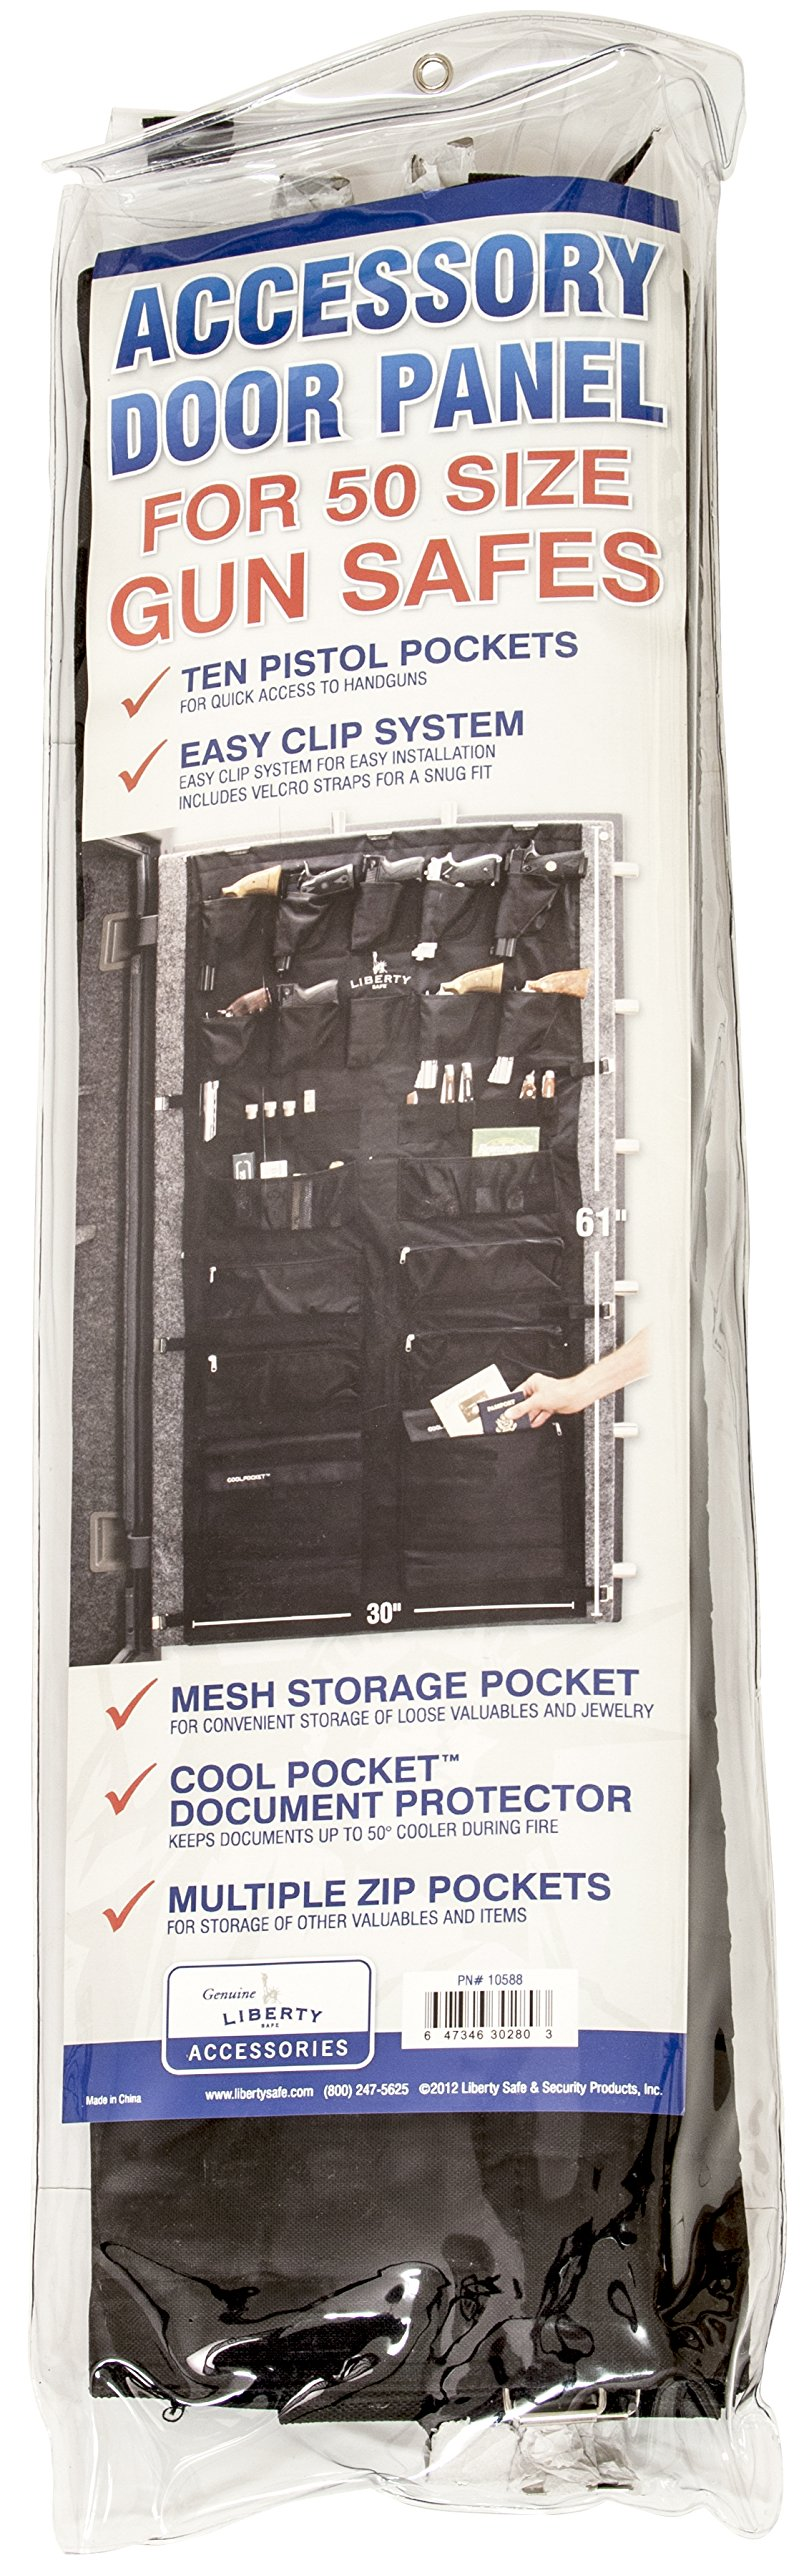 Liberty Gun Safe Door Panel Organizer 10588 Size 50 (29.5 x 62) for 72 Inch Tall Safes by Liberty Safe (Image #2)